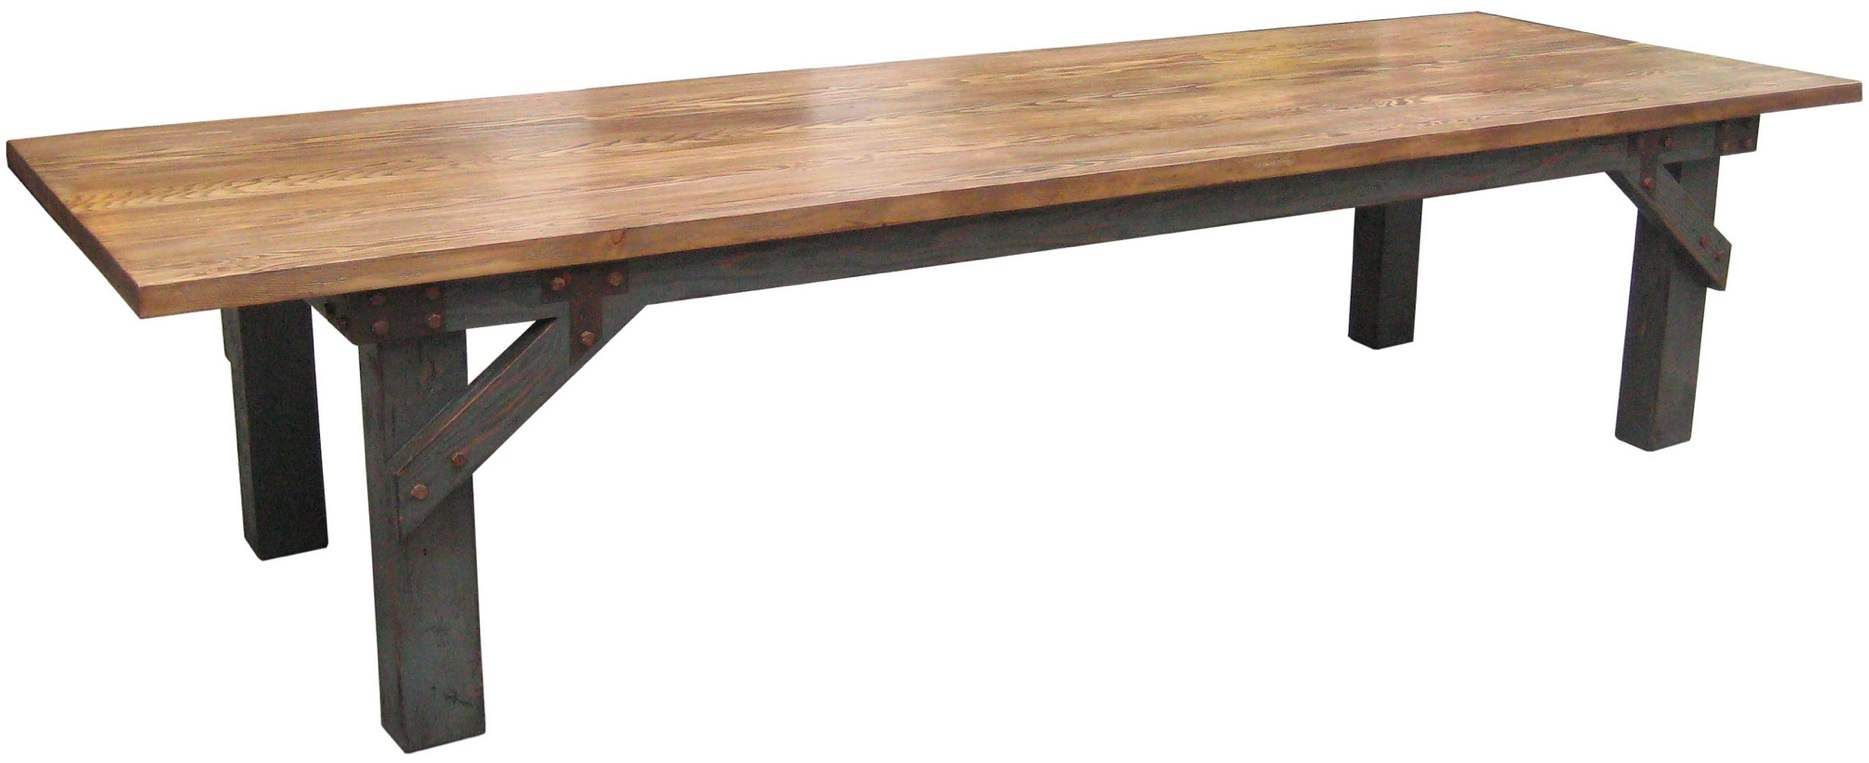 Industrial Work Bench Dining Table In Salvaged Wood Perfect For Urban Lofts  And Modern Decor